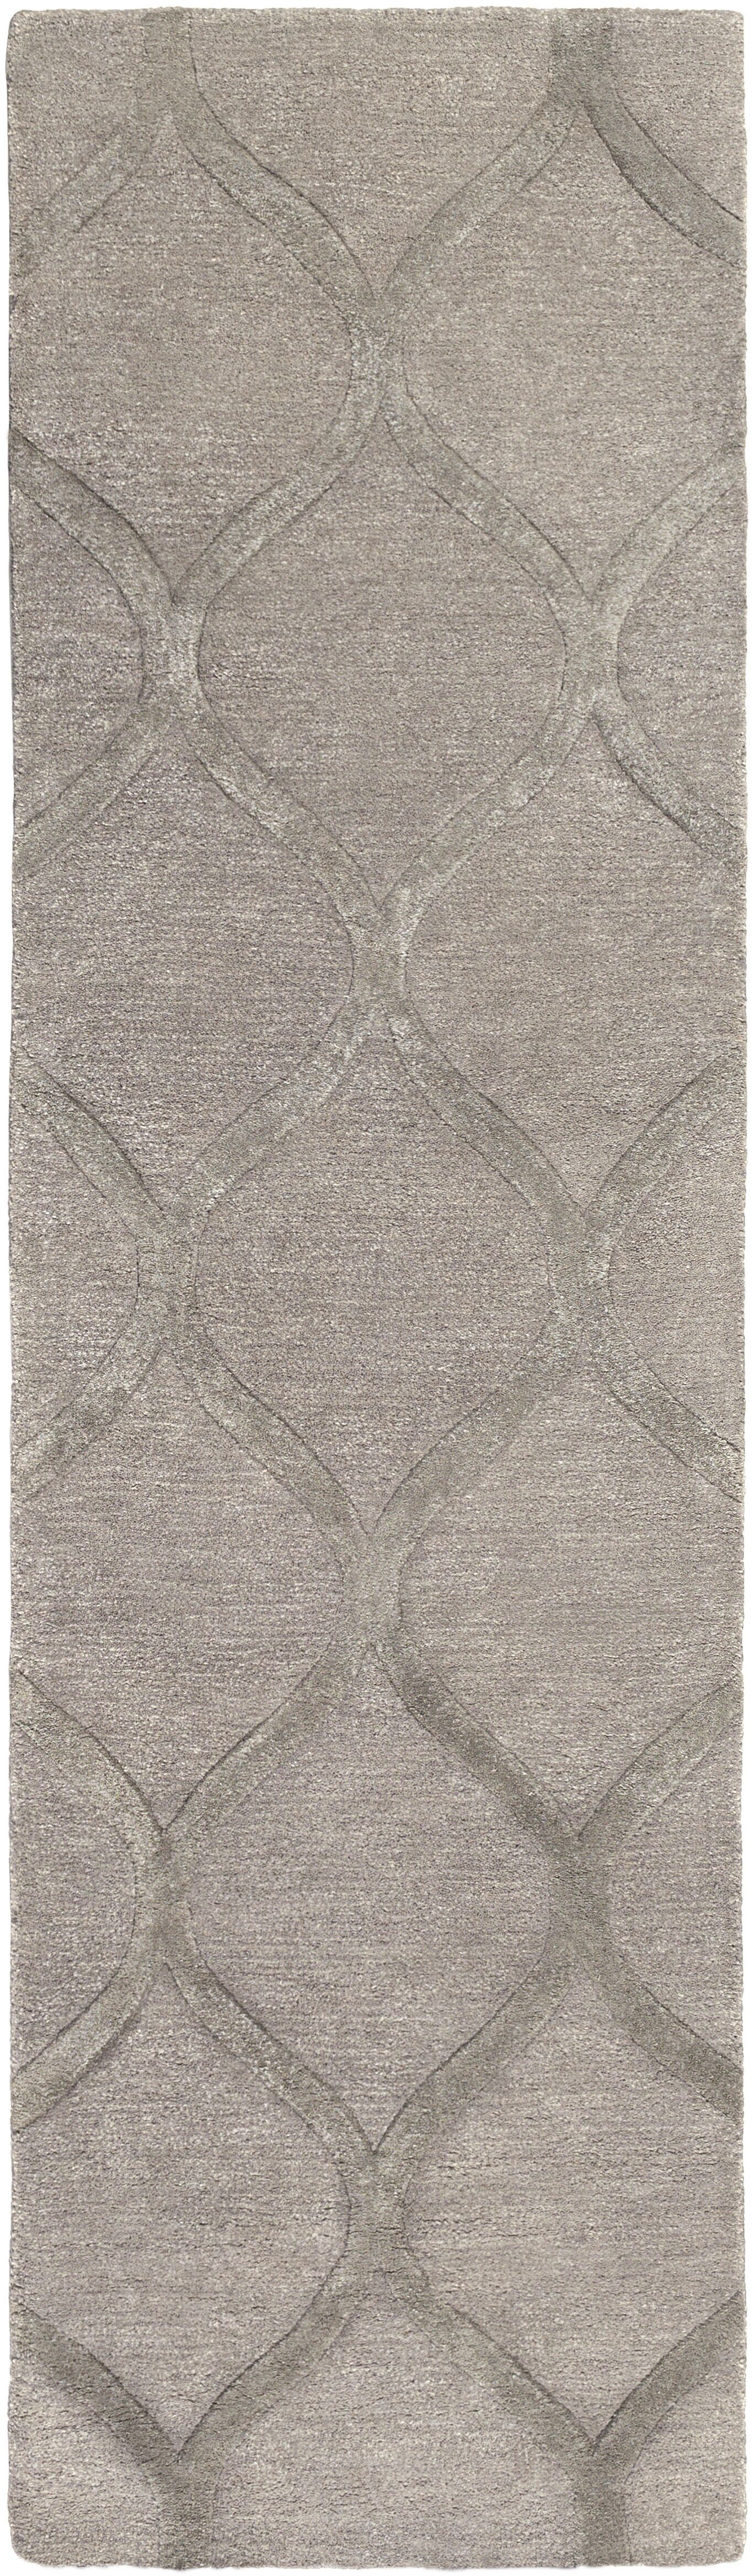 Bronaugh Hand-Tufted Wool Taupe Area Rug Rug Size: Round 6'